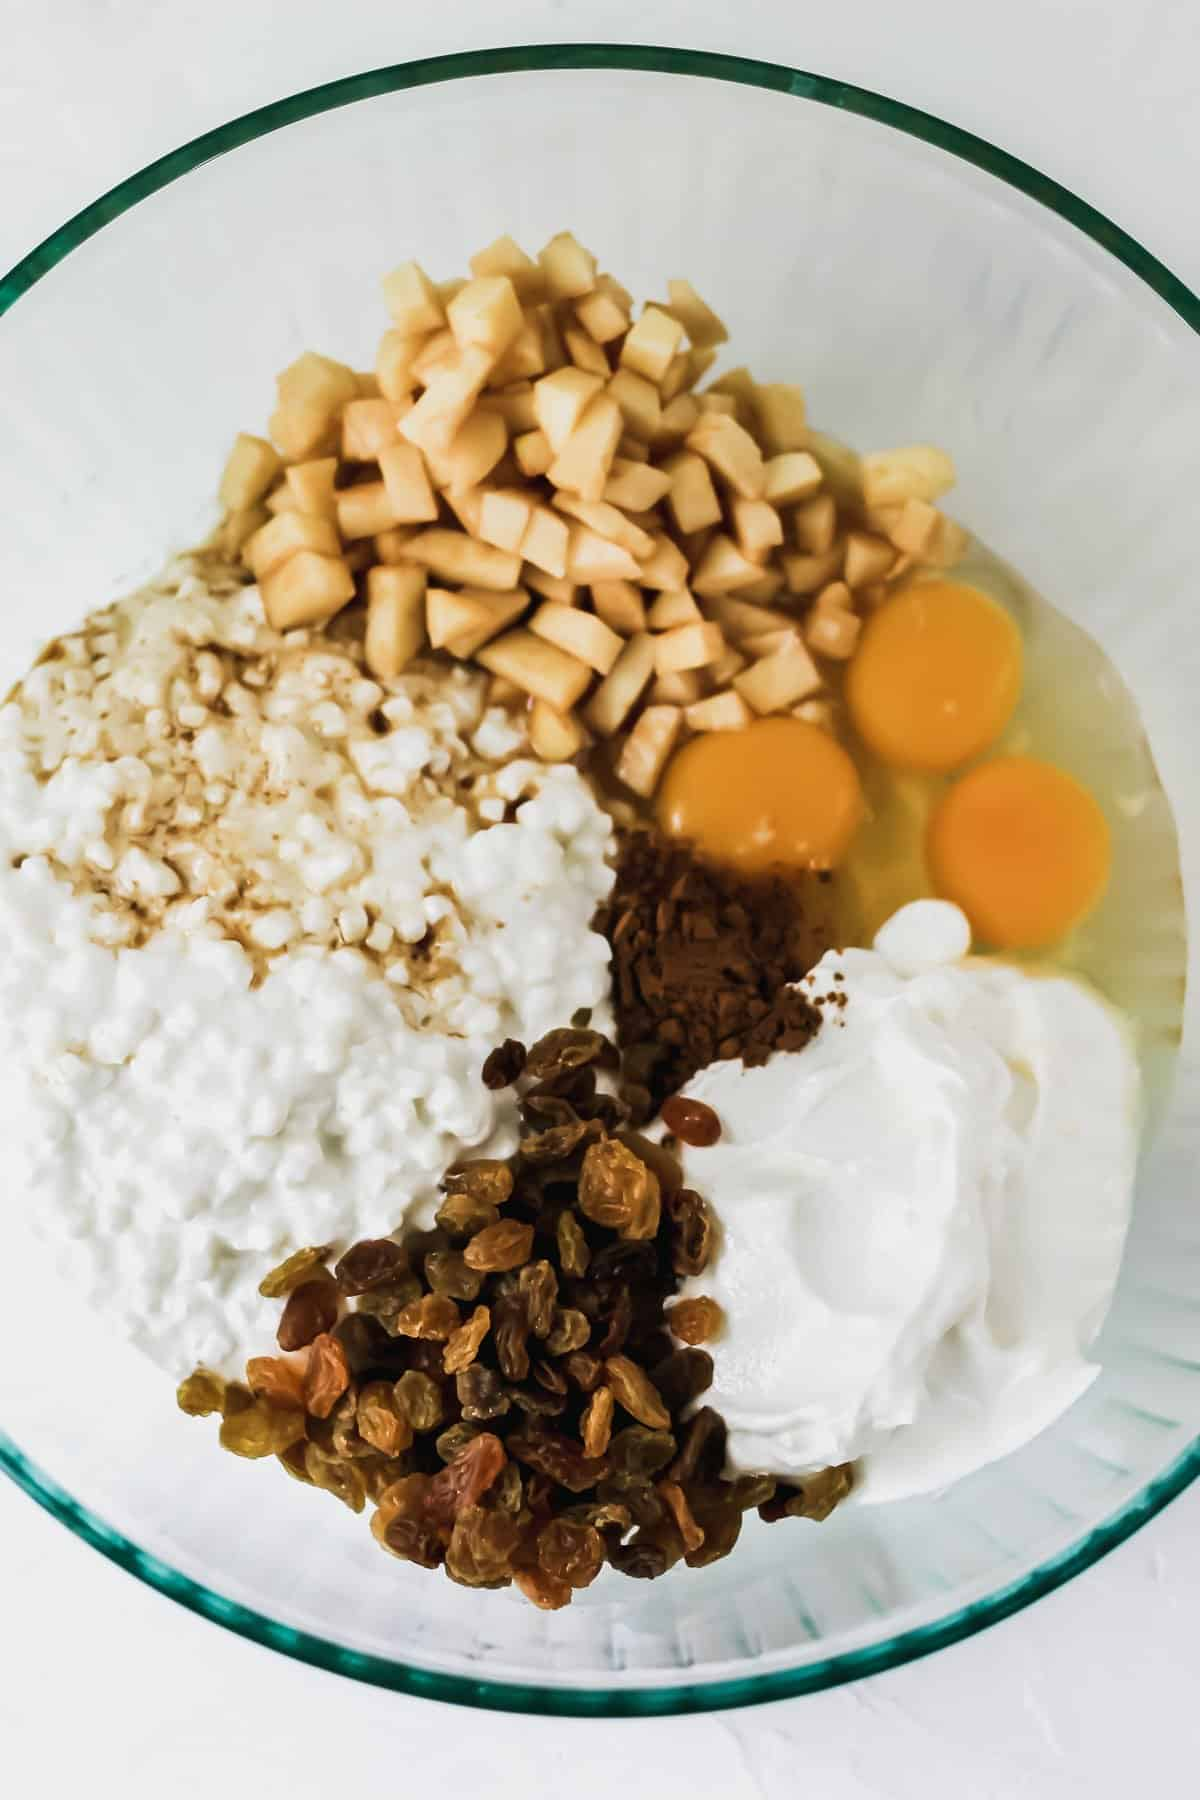 Sour cream, cottage cheese, vanilla, raisins, eggs, cinnamon, and chopped apples in a glass mixing bowl.